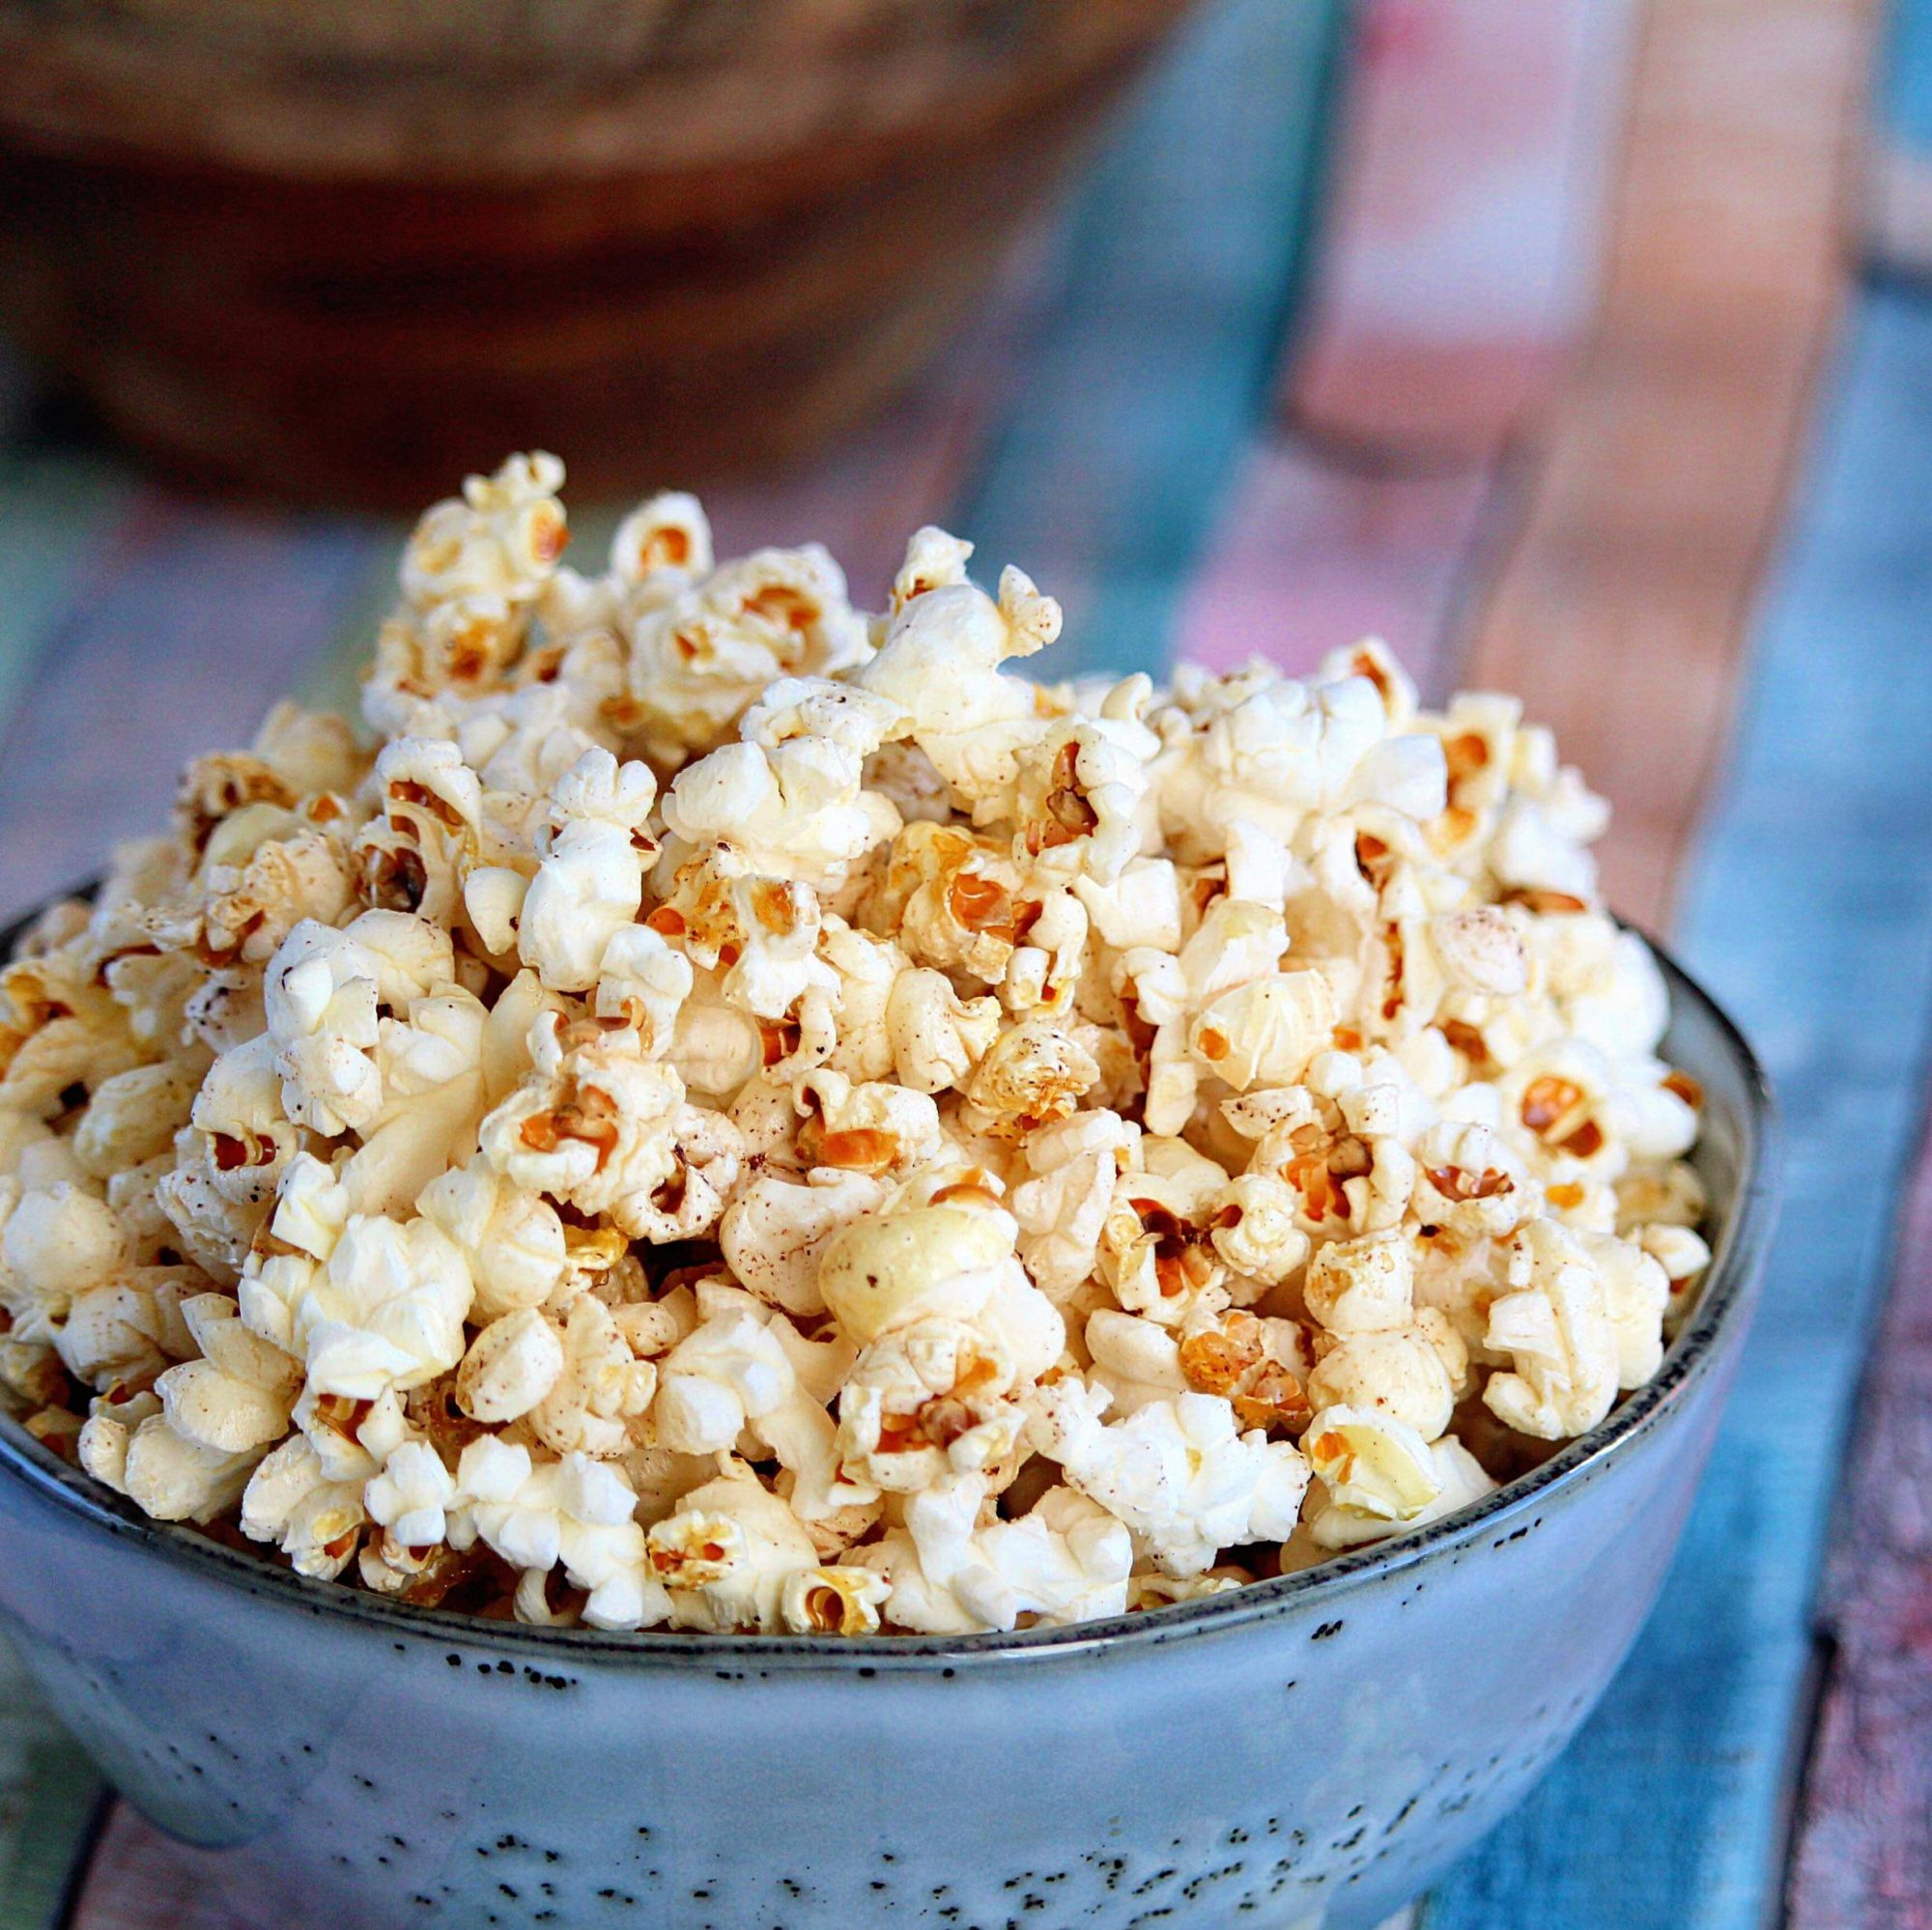 Movie Star Popcorn in blue bowl